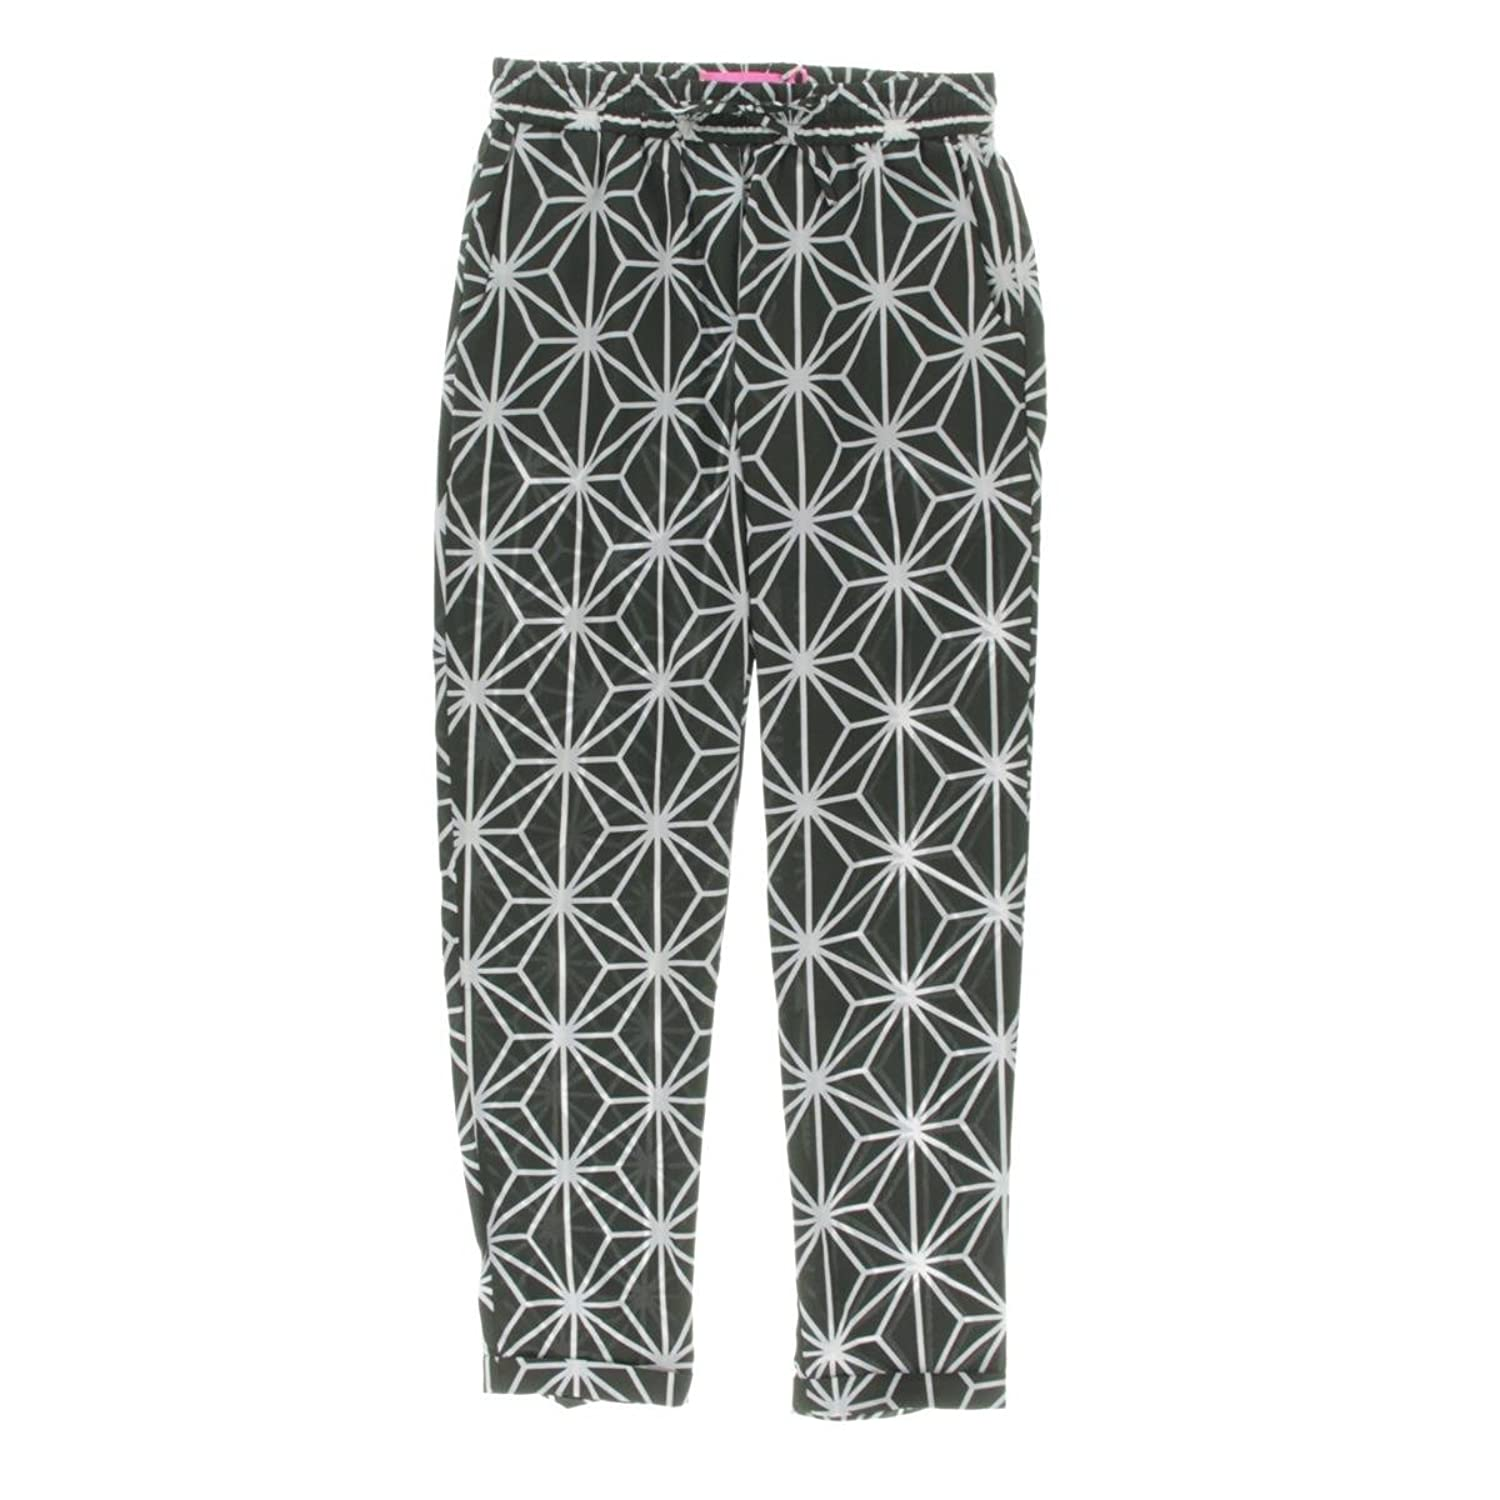 The Macbeth Collection Womens Pattern Tapered Casual Pants